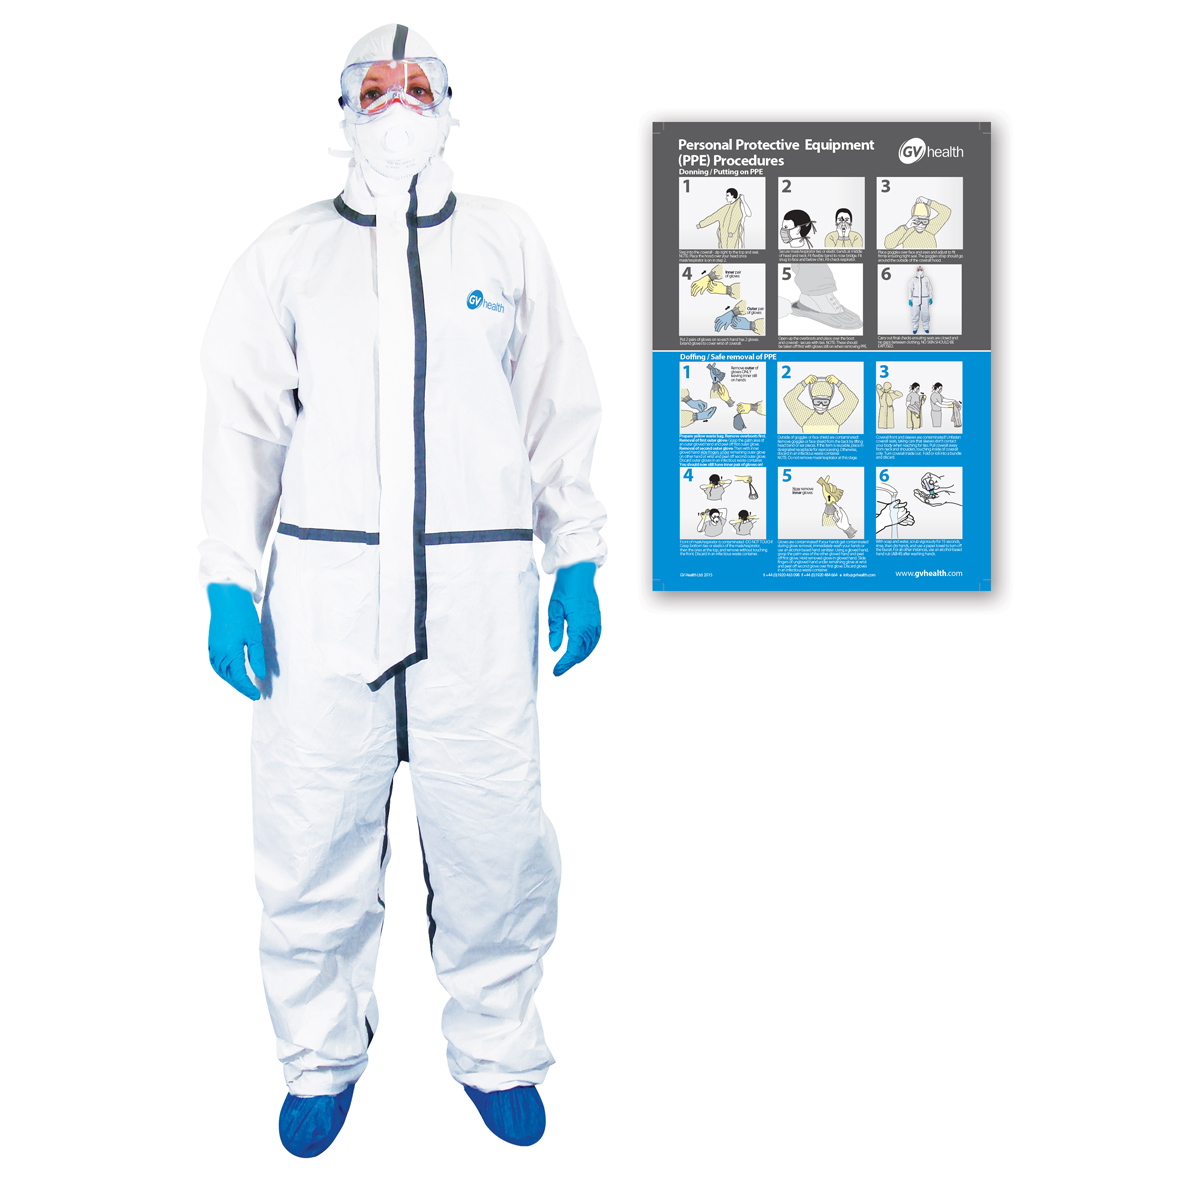 GV Health Containment Personal Protective Equipment thumbnail image 1